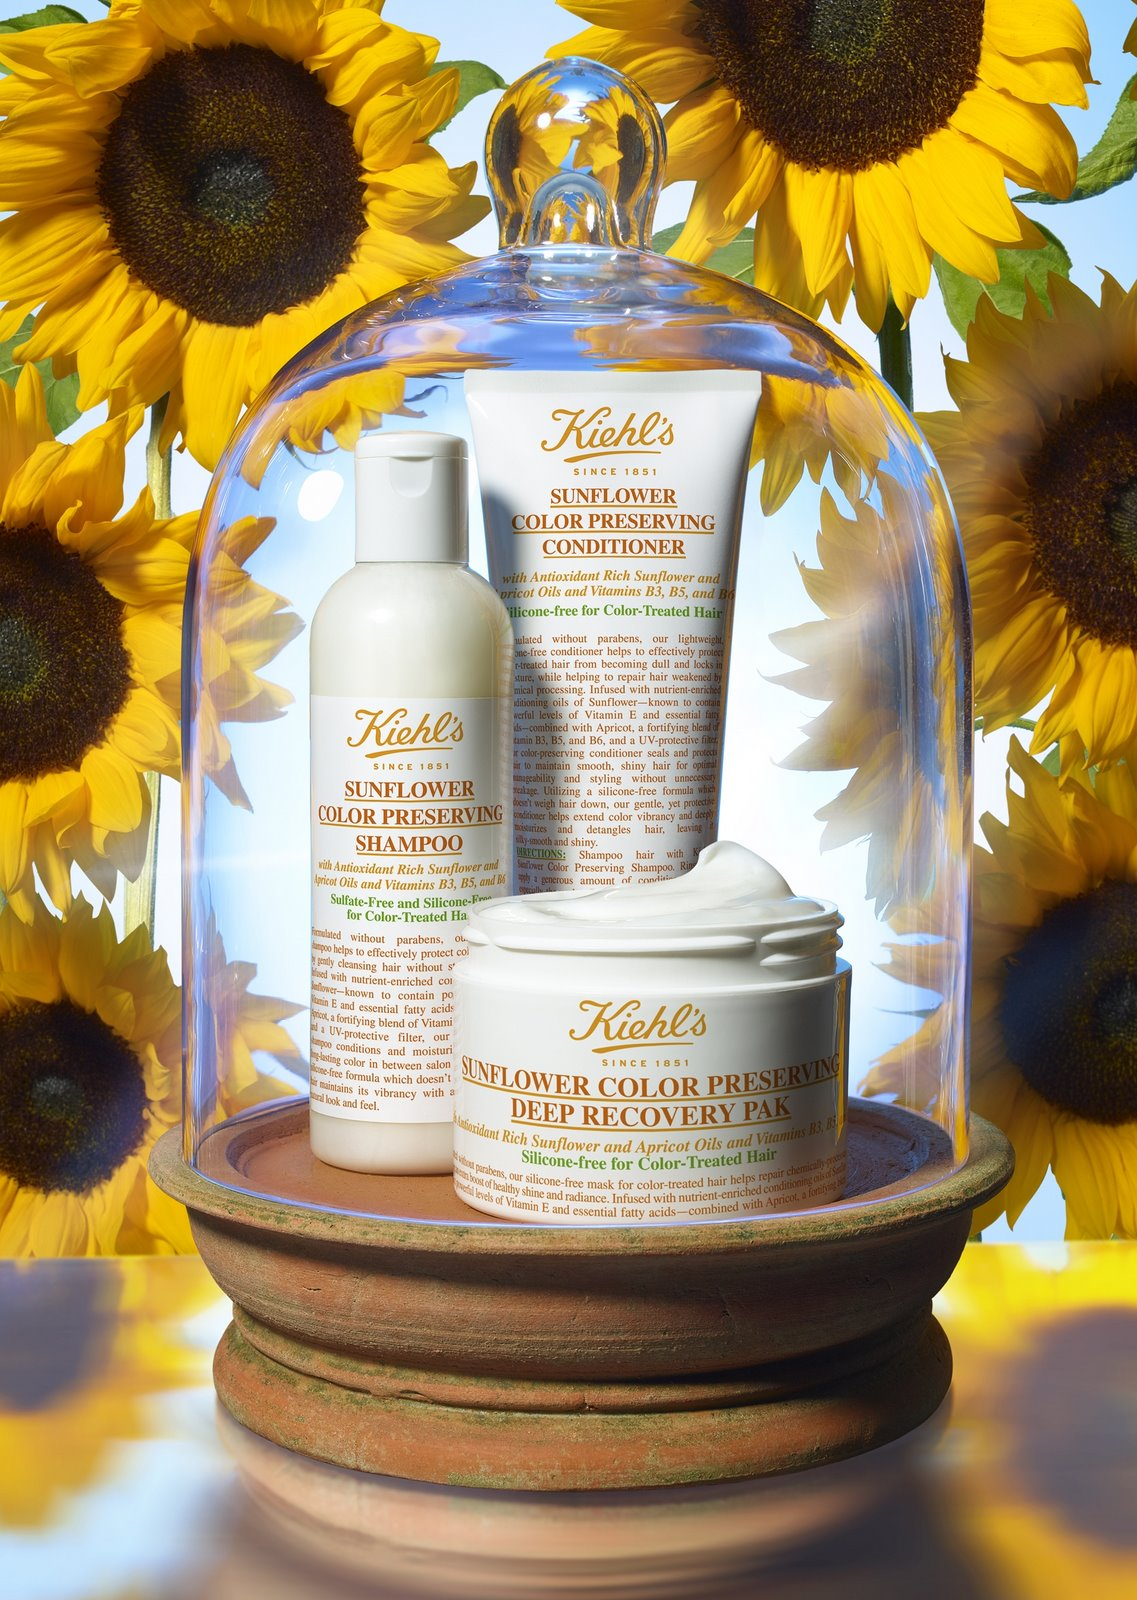 Kiehl's-Sunflower-Color-Preserving-Hair-Care-Collection